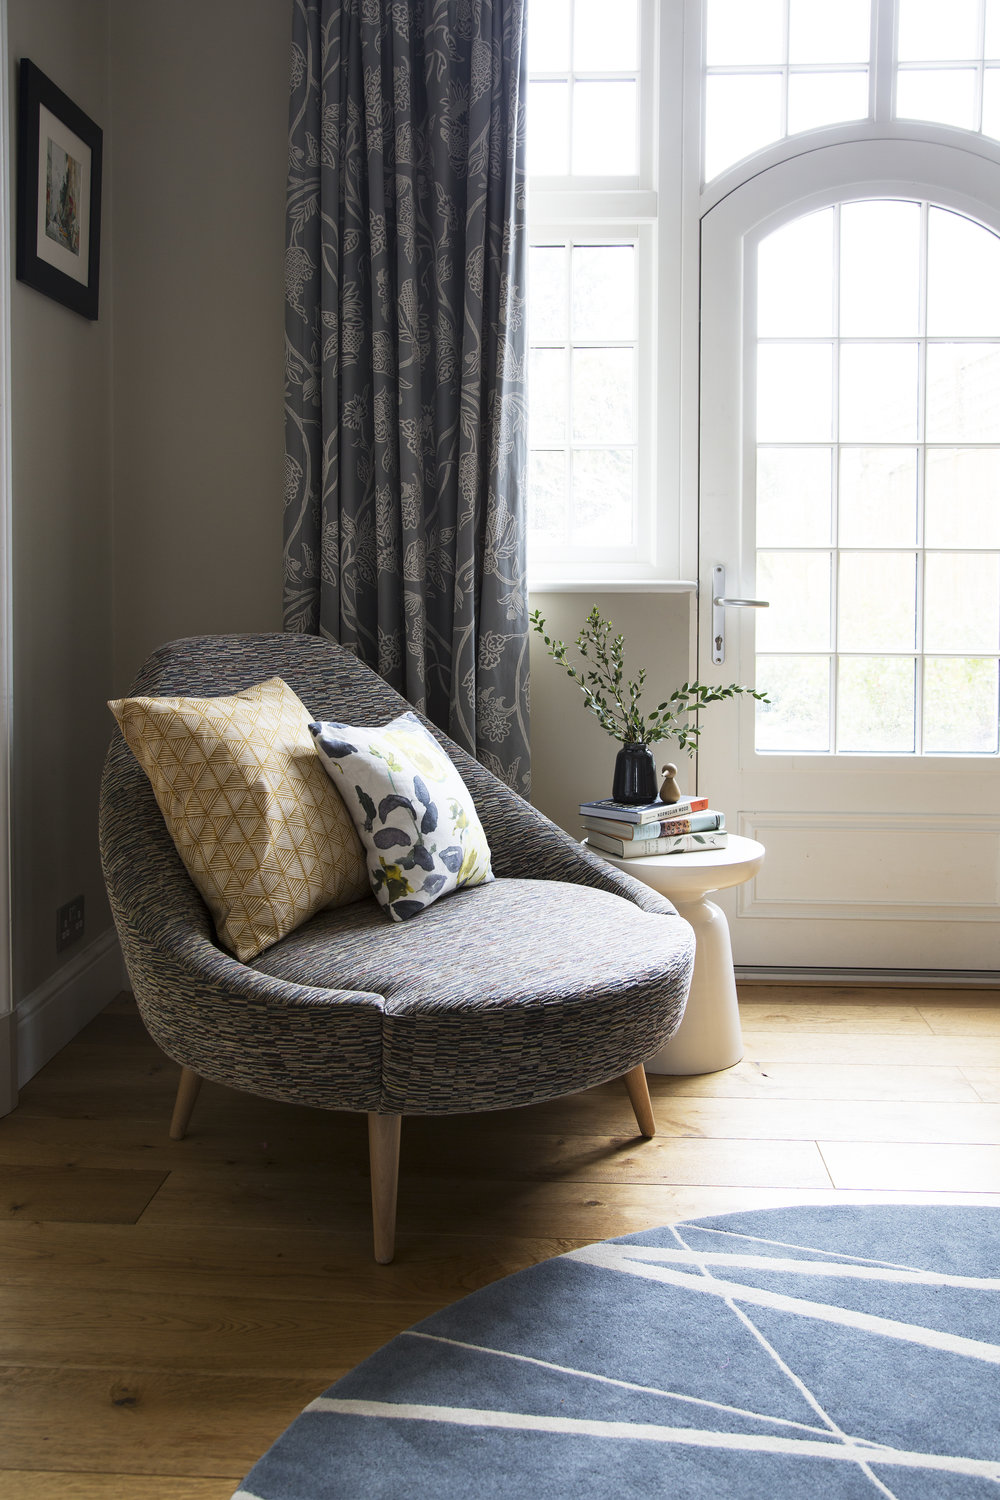 Printed and textured fabrics are used to add visual interest, texture and depth in this sitting room in Sevenoaks Kent - Interior Design by Phoebe Oldrey of Smartstyle Interiors